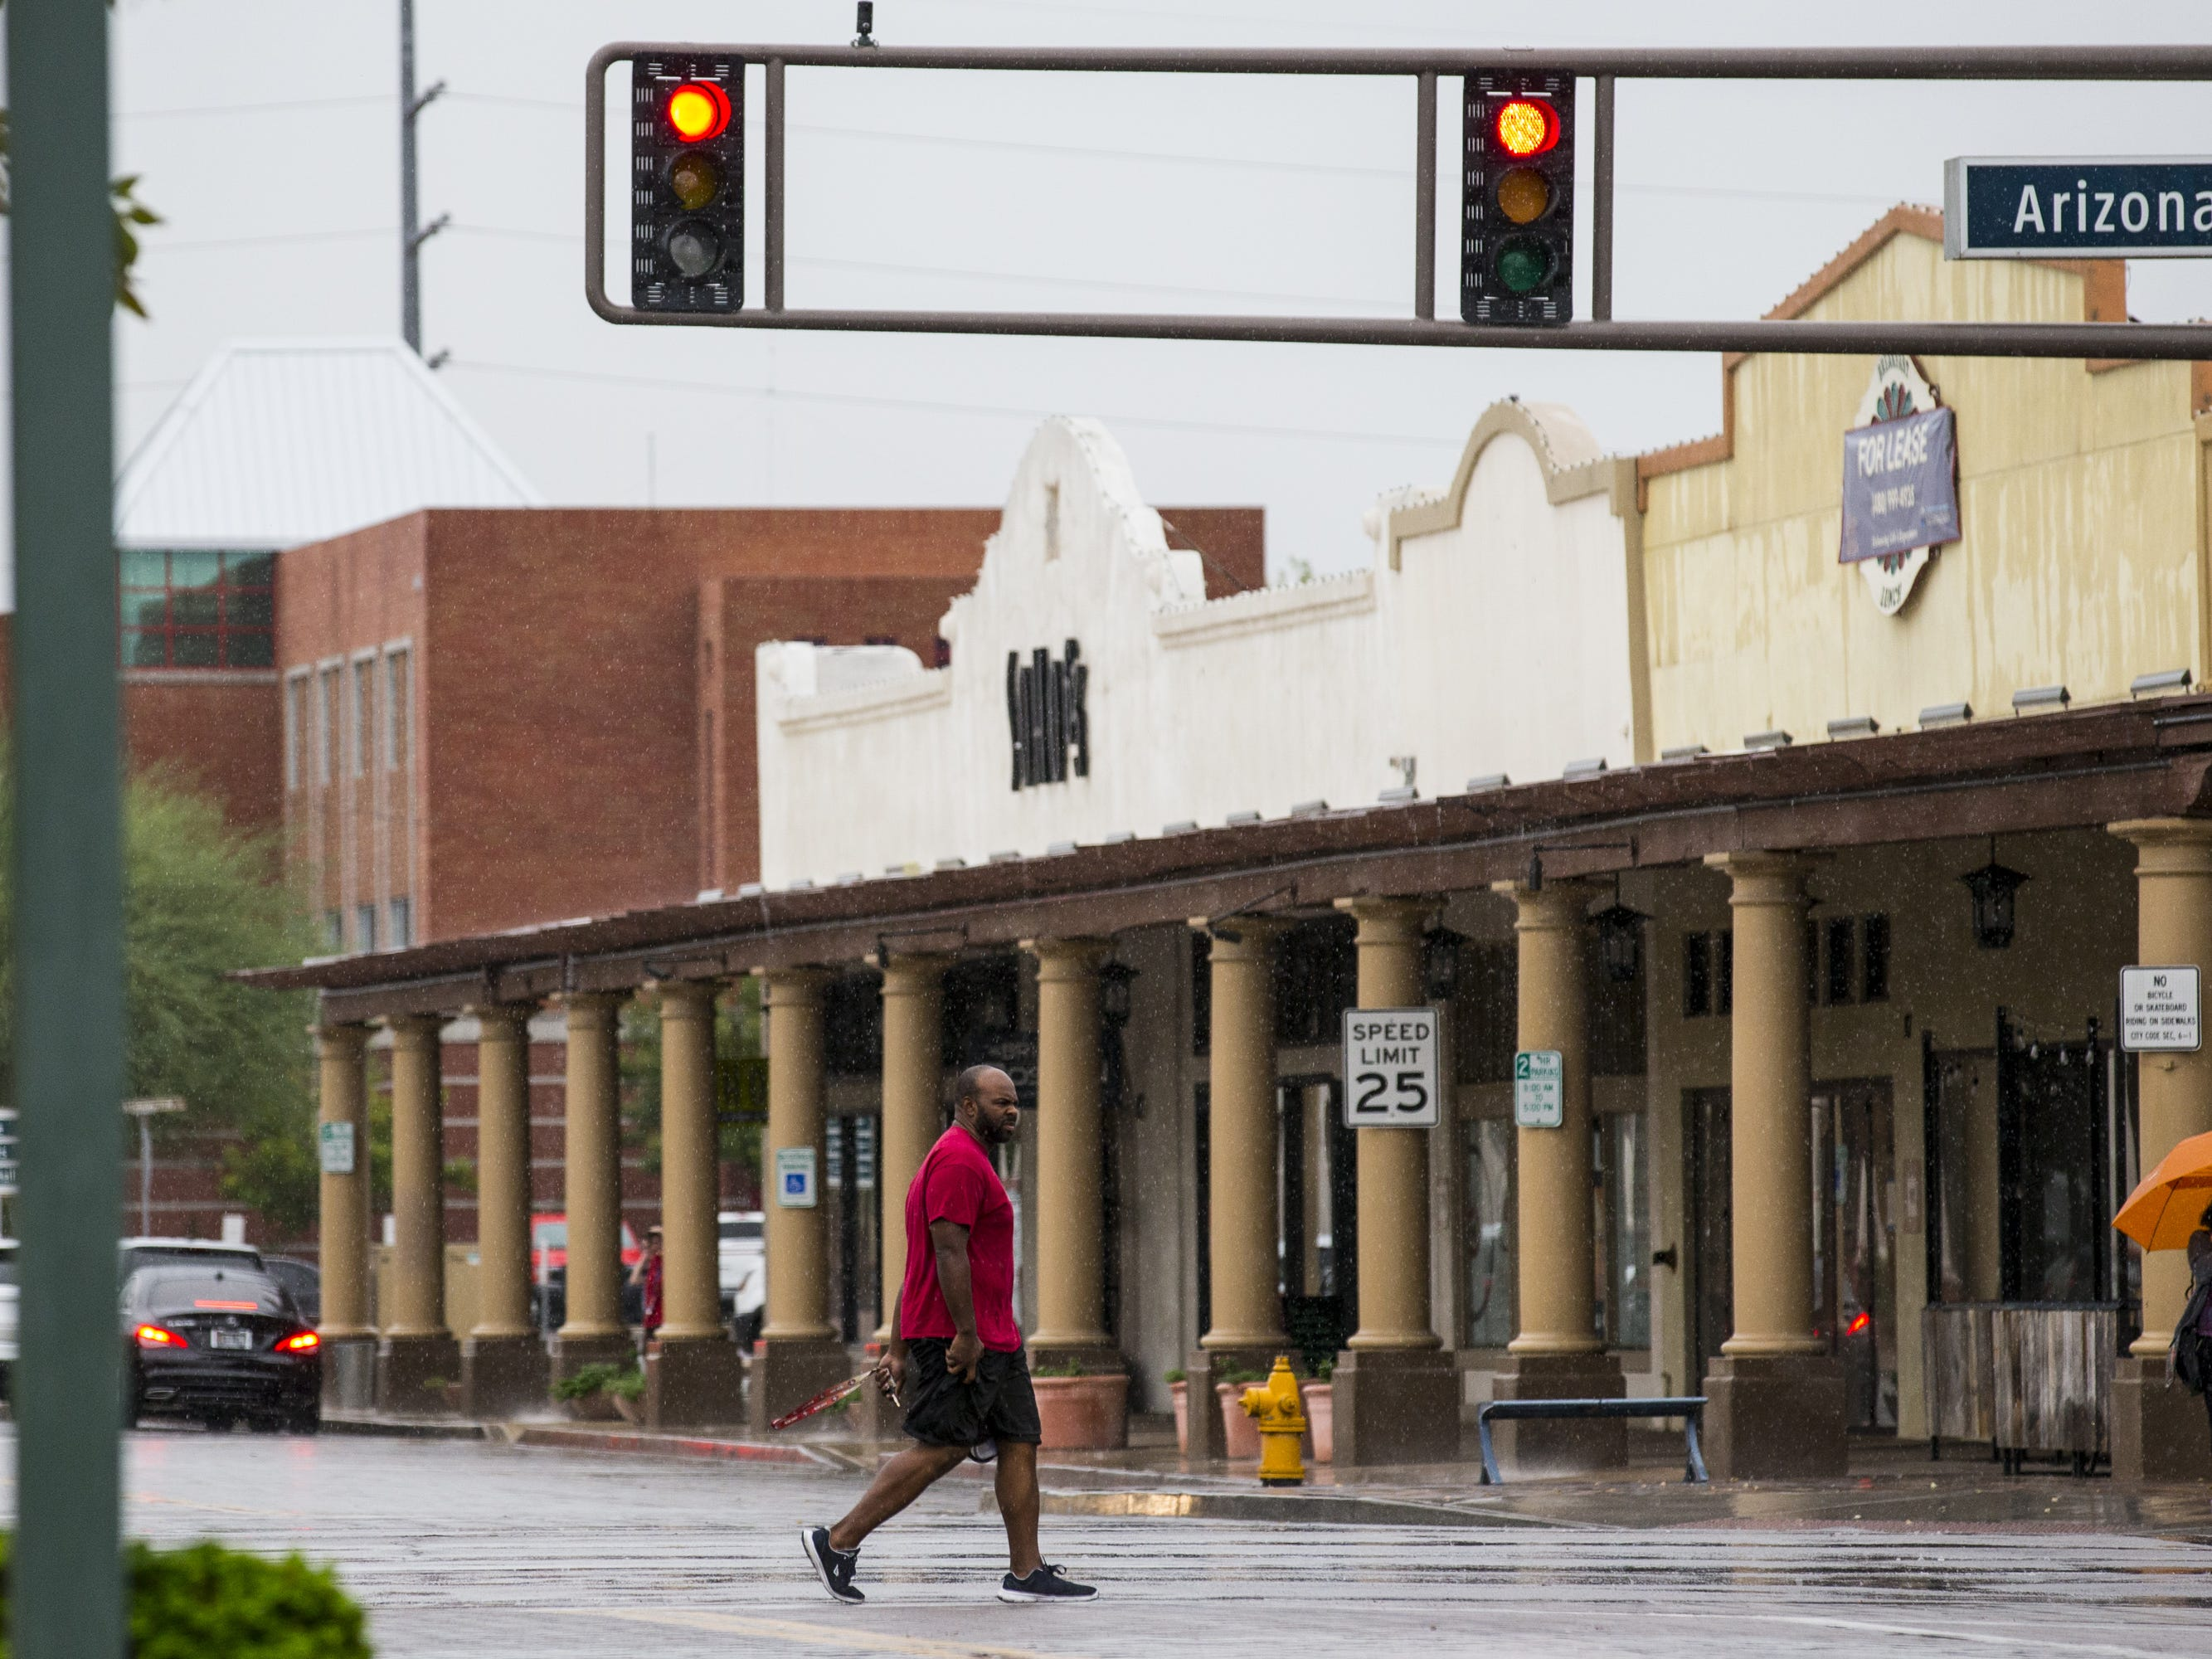 A man walks across the street in the rain on Sept. 19, 2018, in Chandler.